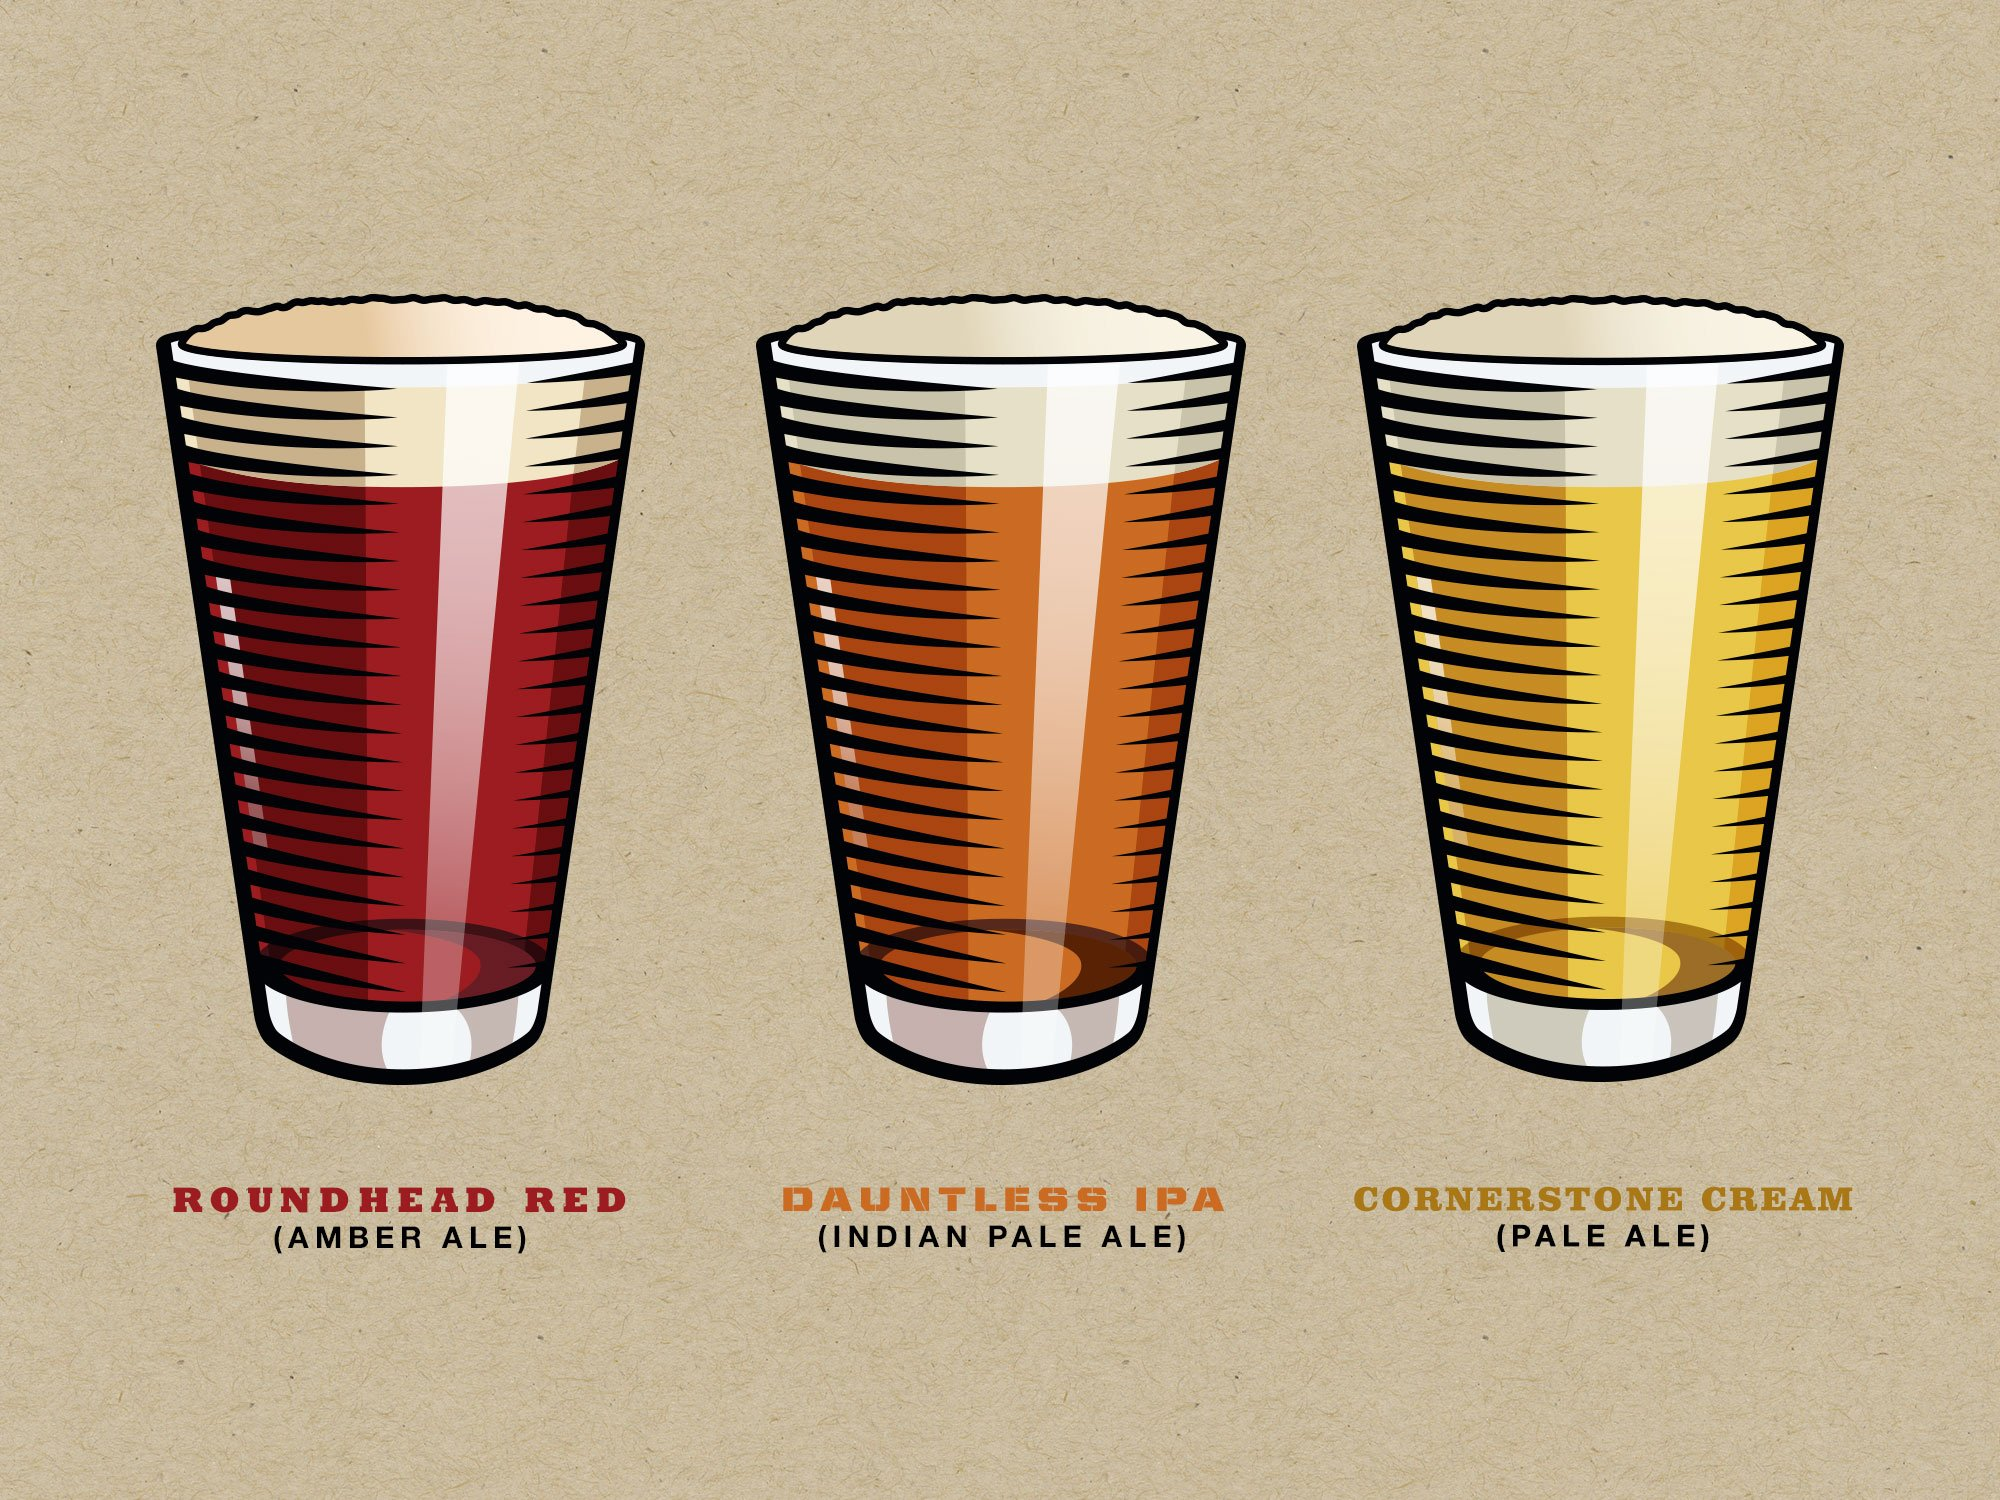 Three illustrations of beer glasses for Solid Rock Brewing's sixpack cartons and labels